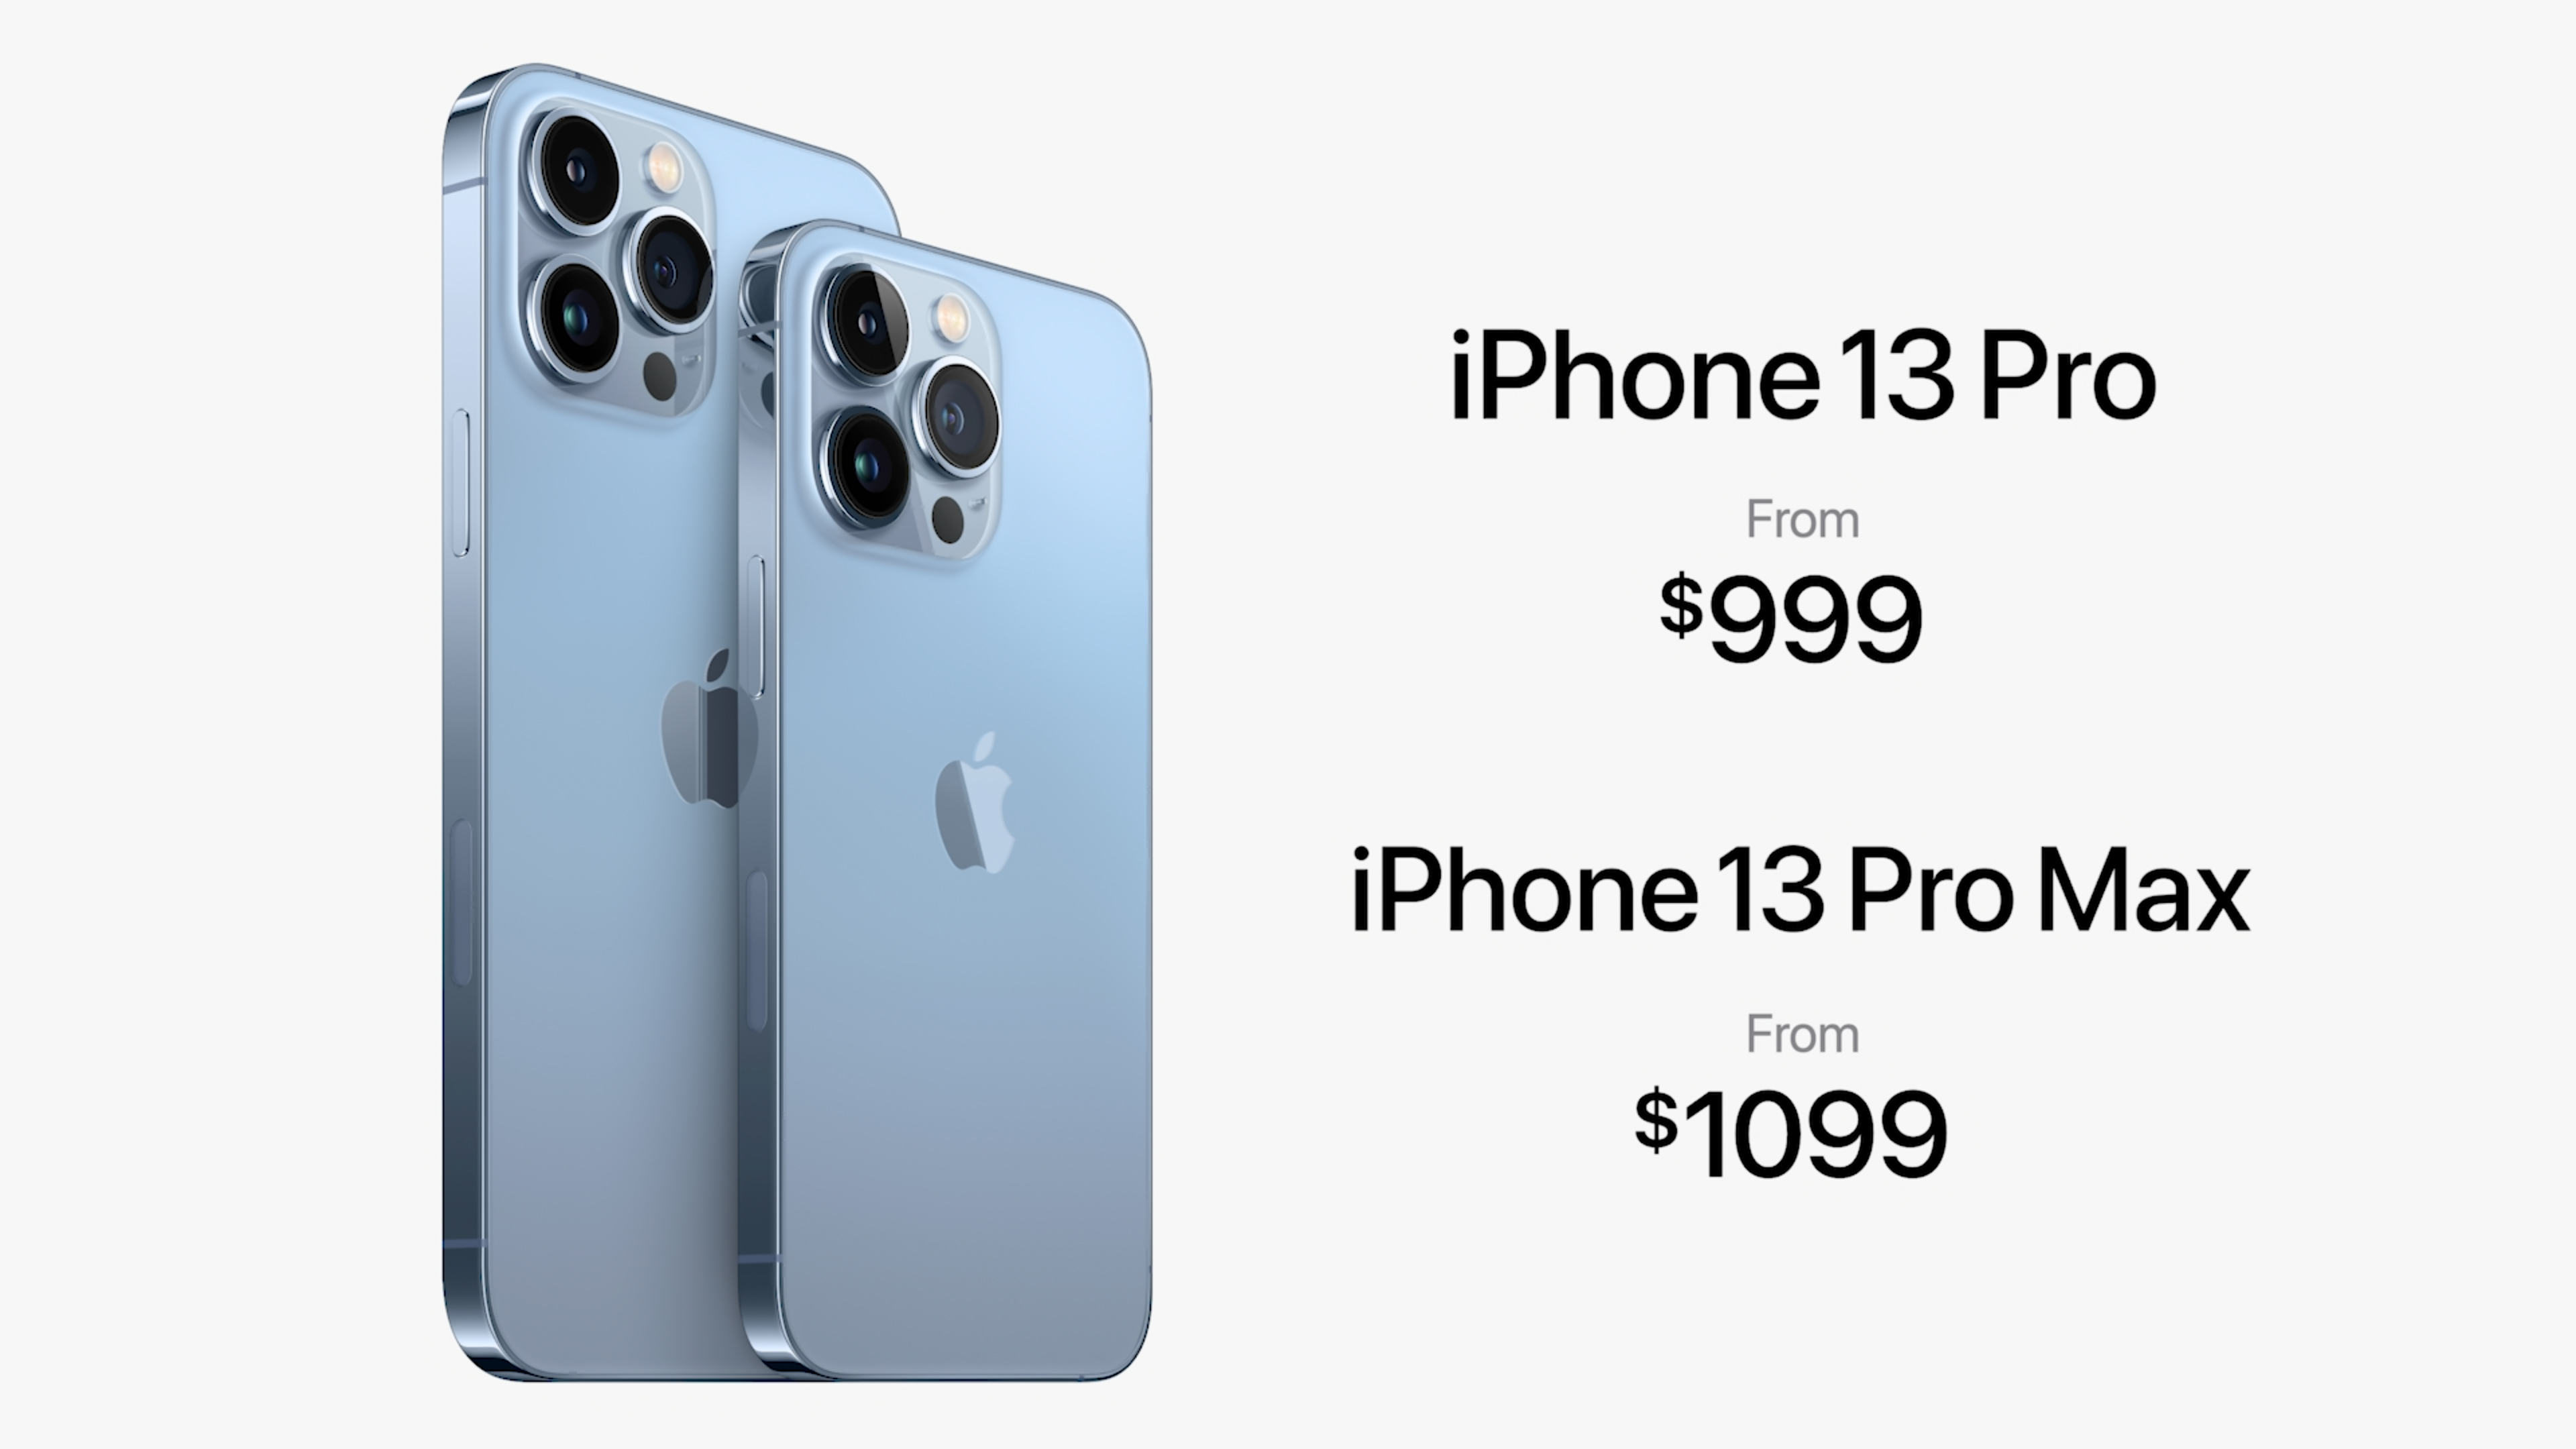 iPhone 13 Pro and Pro Max pricing